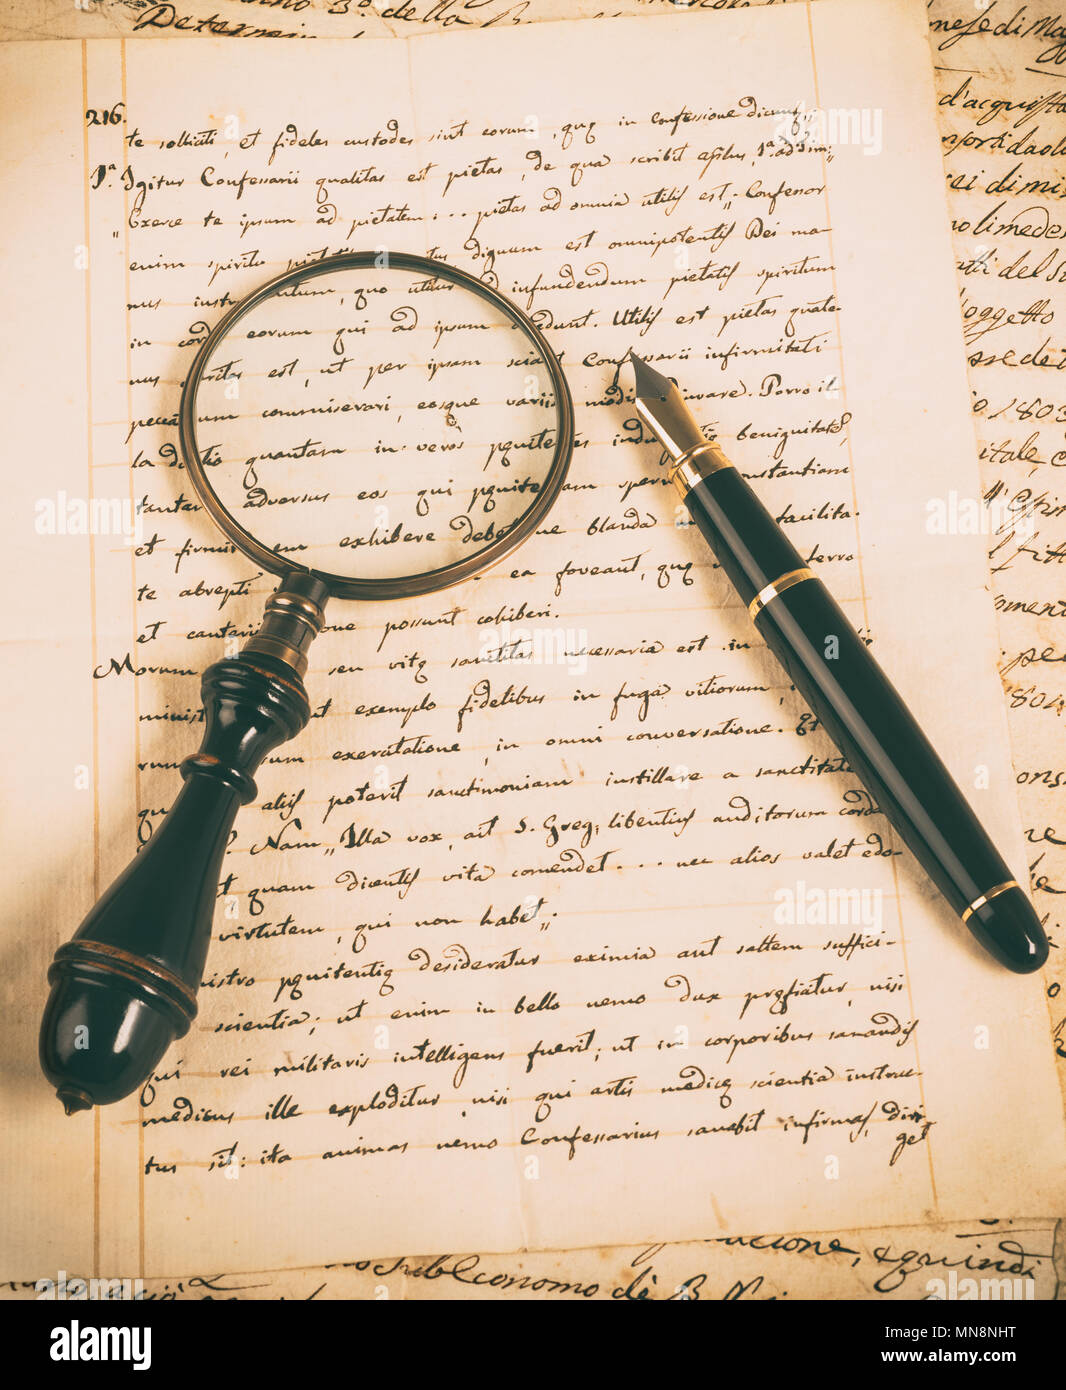 Fountain pen and magnifying glass on a letter - Stock Image